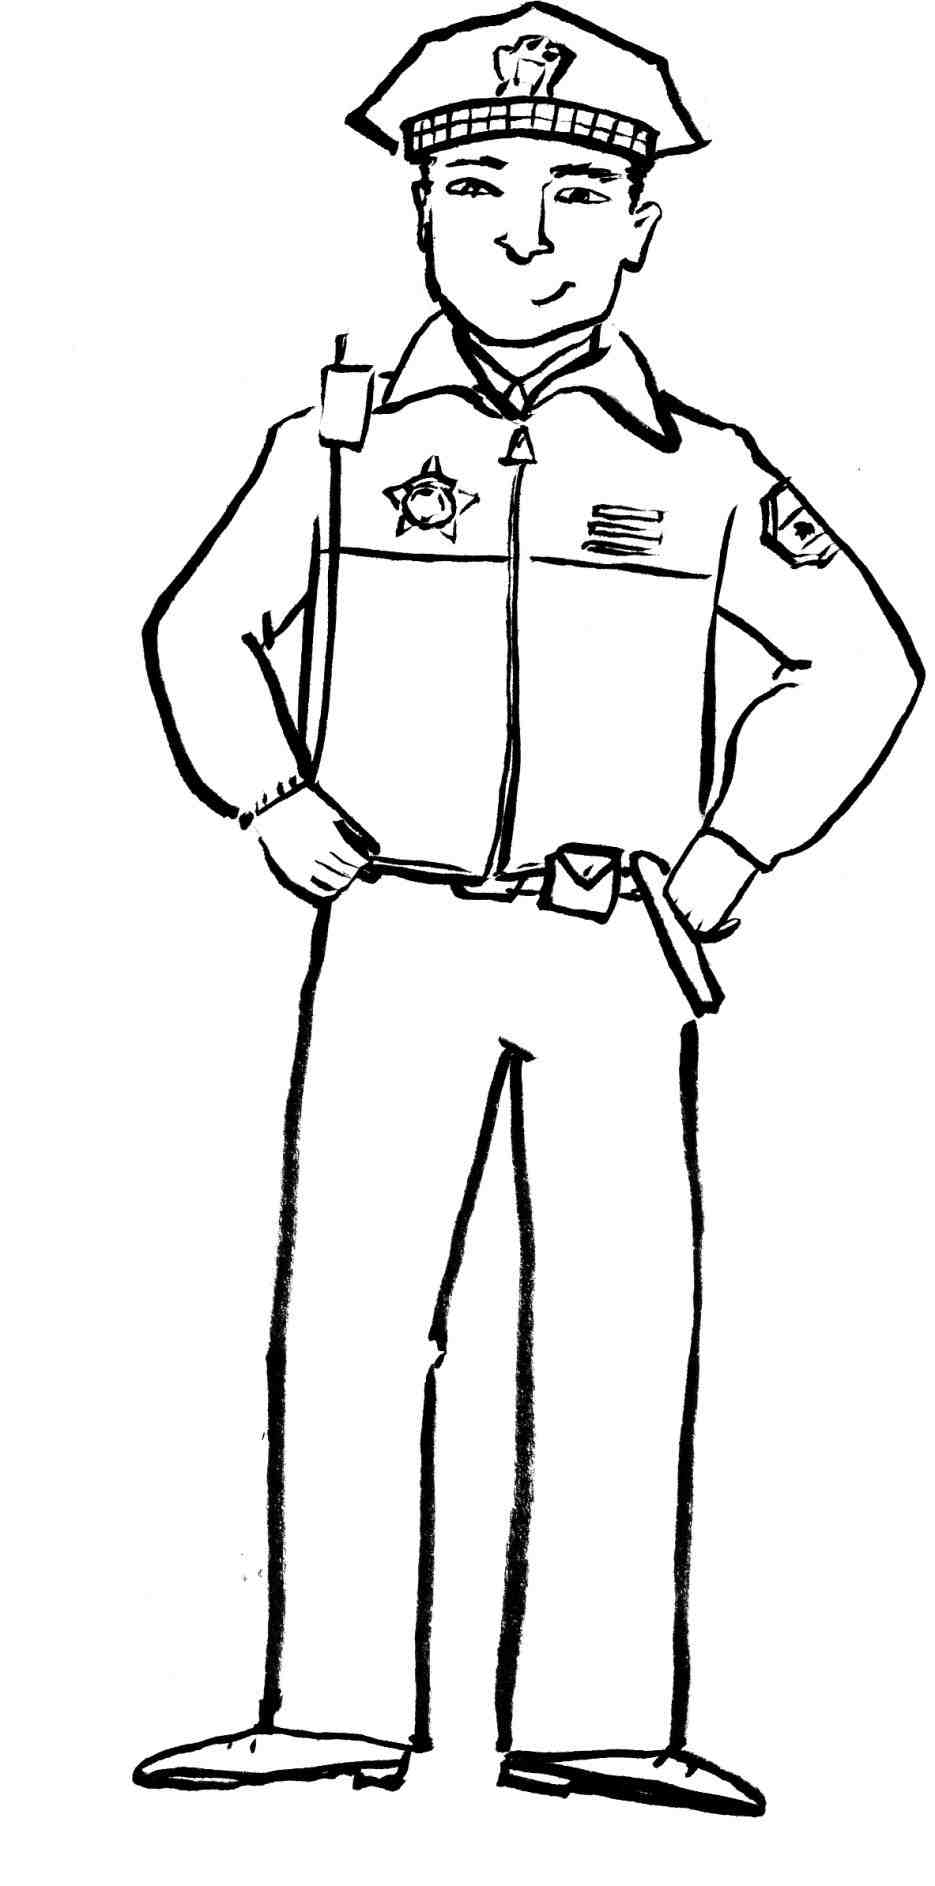 Police office clipart black and white clipart Police Badge Clipart Black And White | Free download best ... clipart